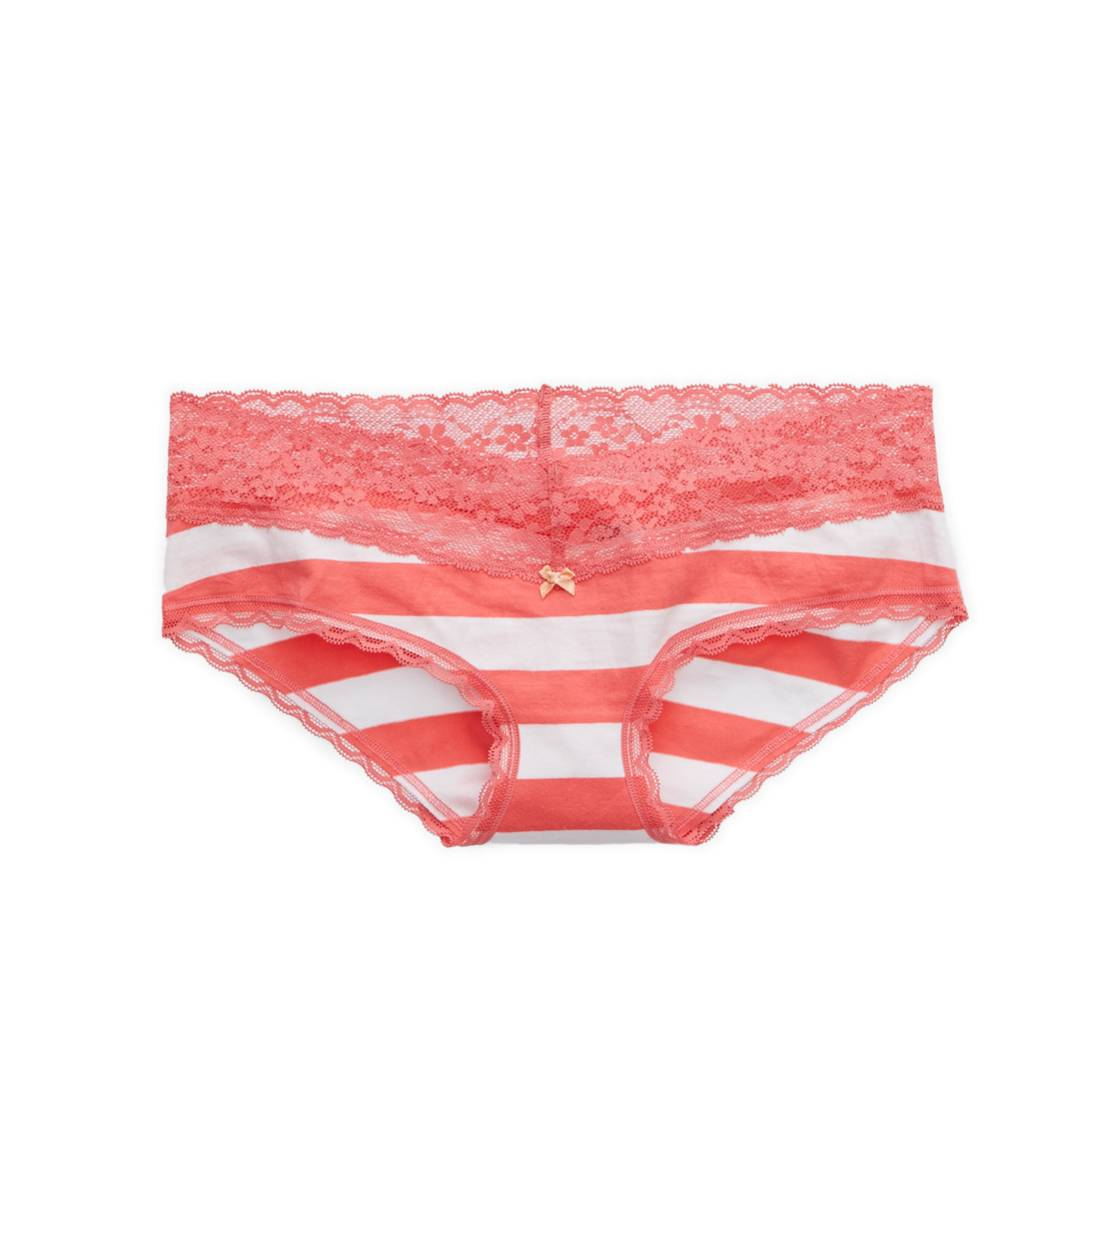 Whipped Strawberry Aerie Lace Trim Boybrief